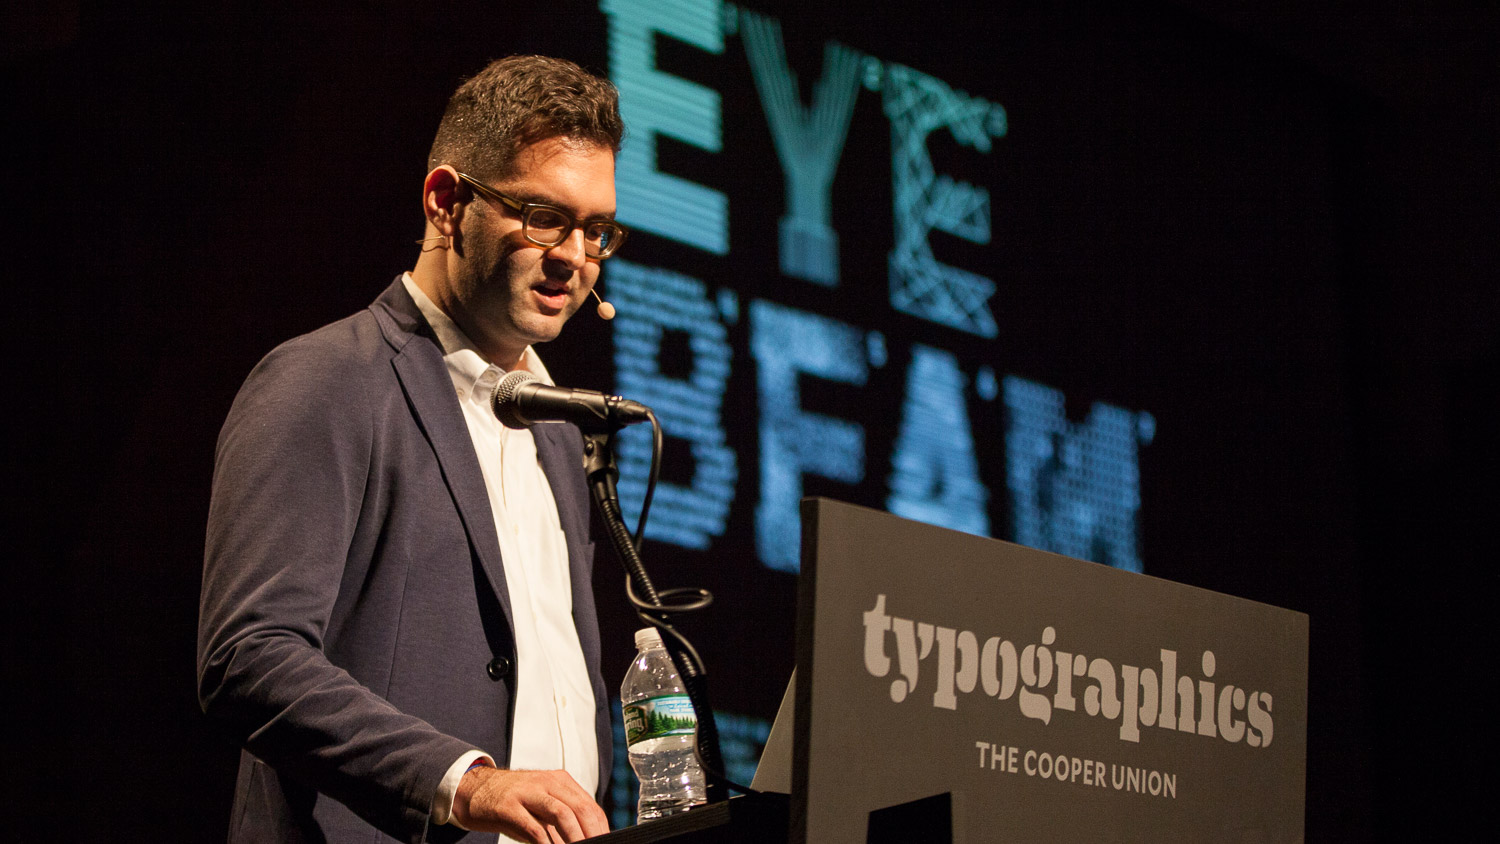 Rob Giampietro speaking at Typographics NYC 2016. Courtesy of The Cooper Union / Photo by Marget Long.